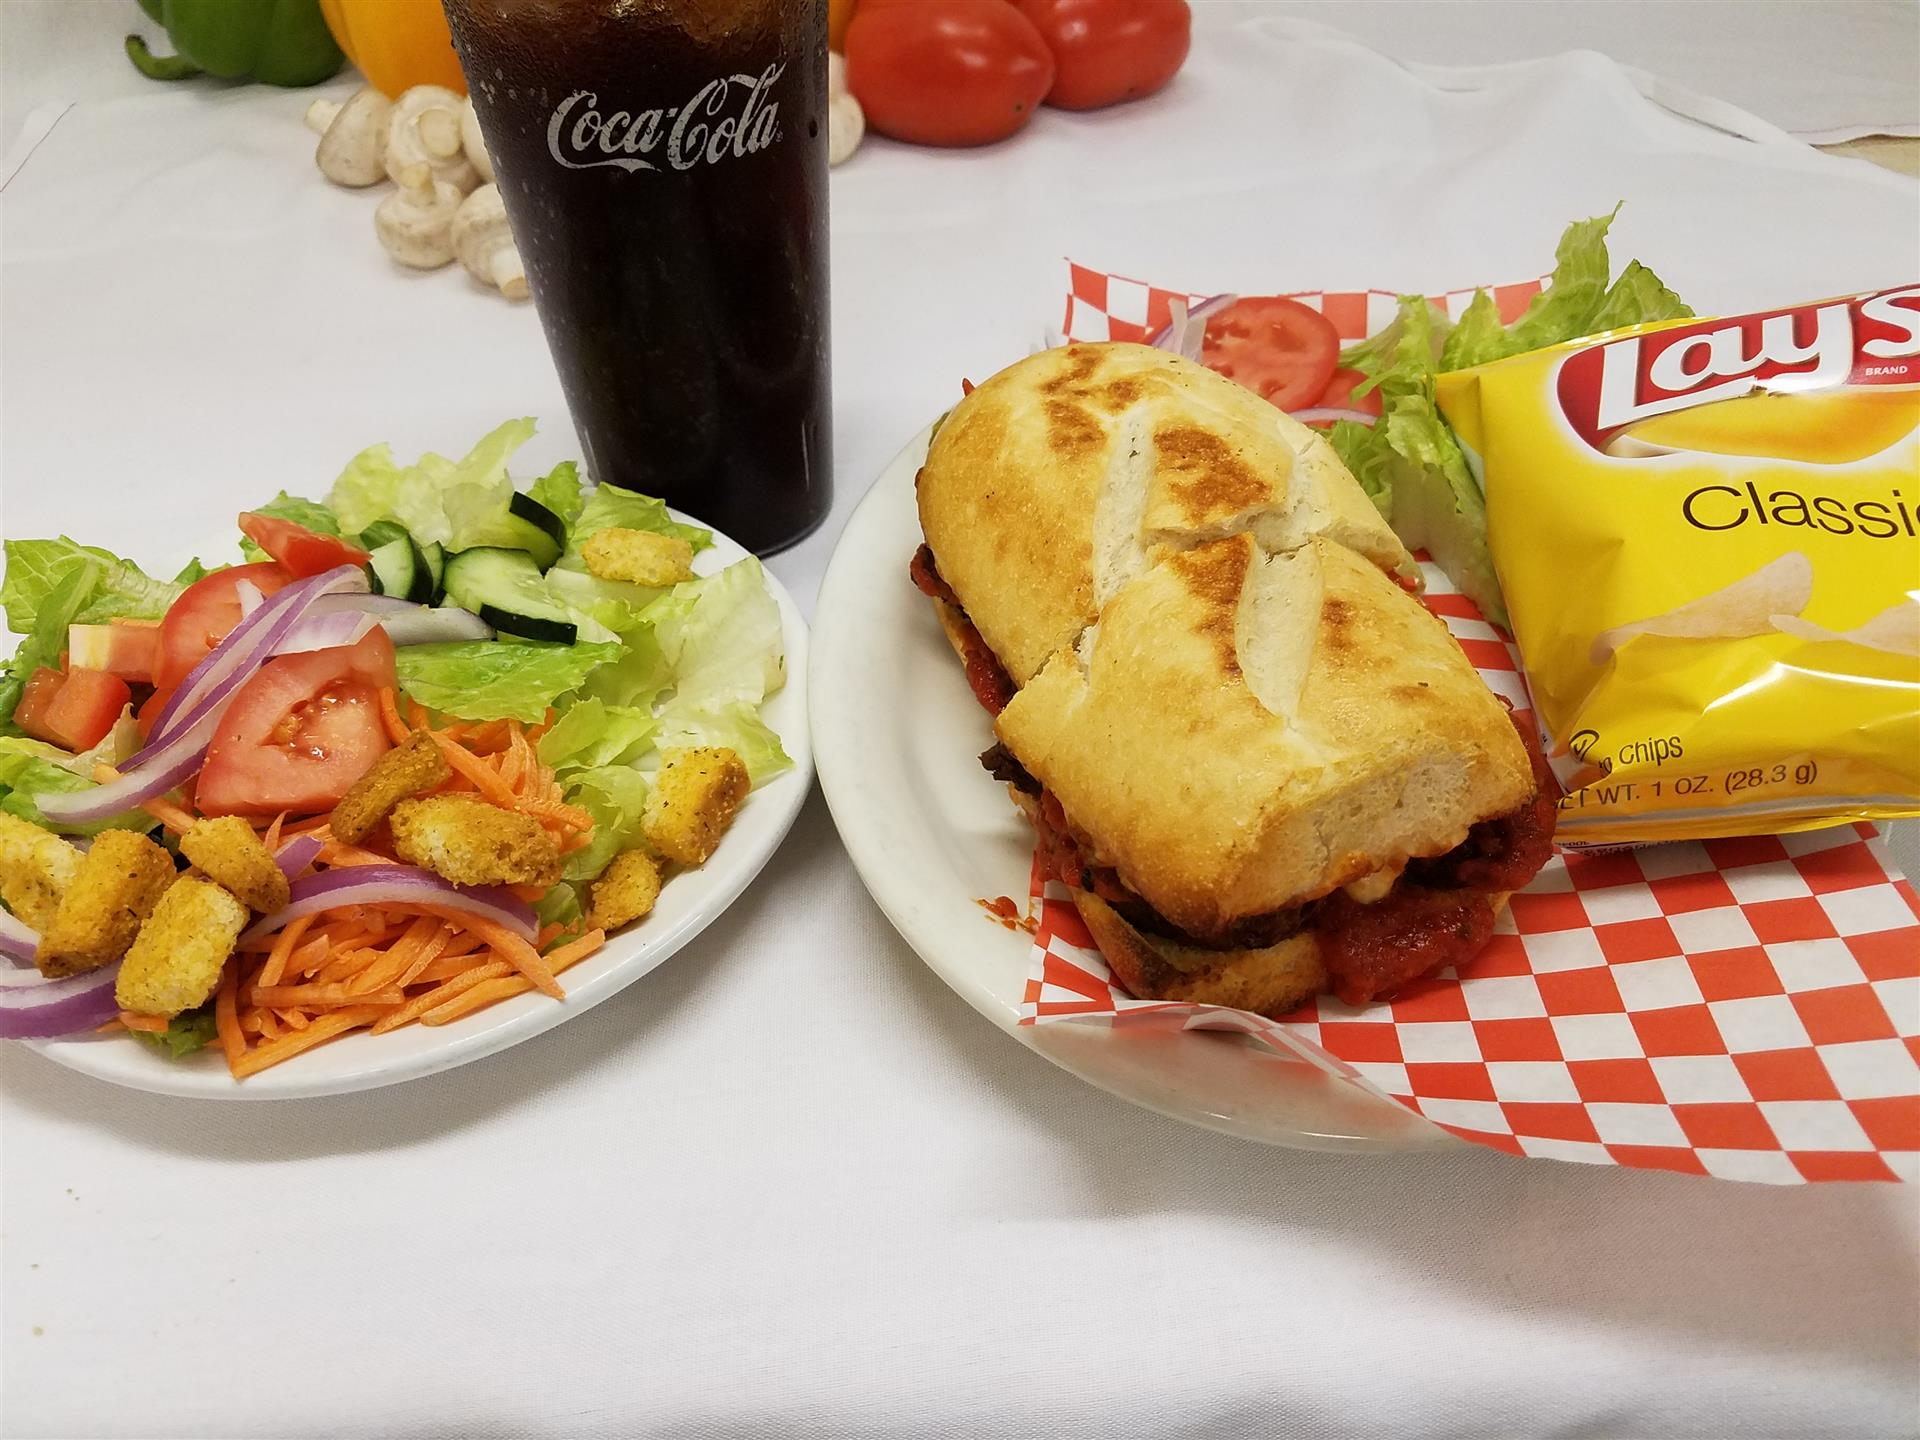 meatball sub with a house salad and a soda